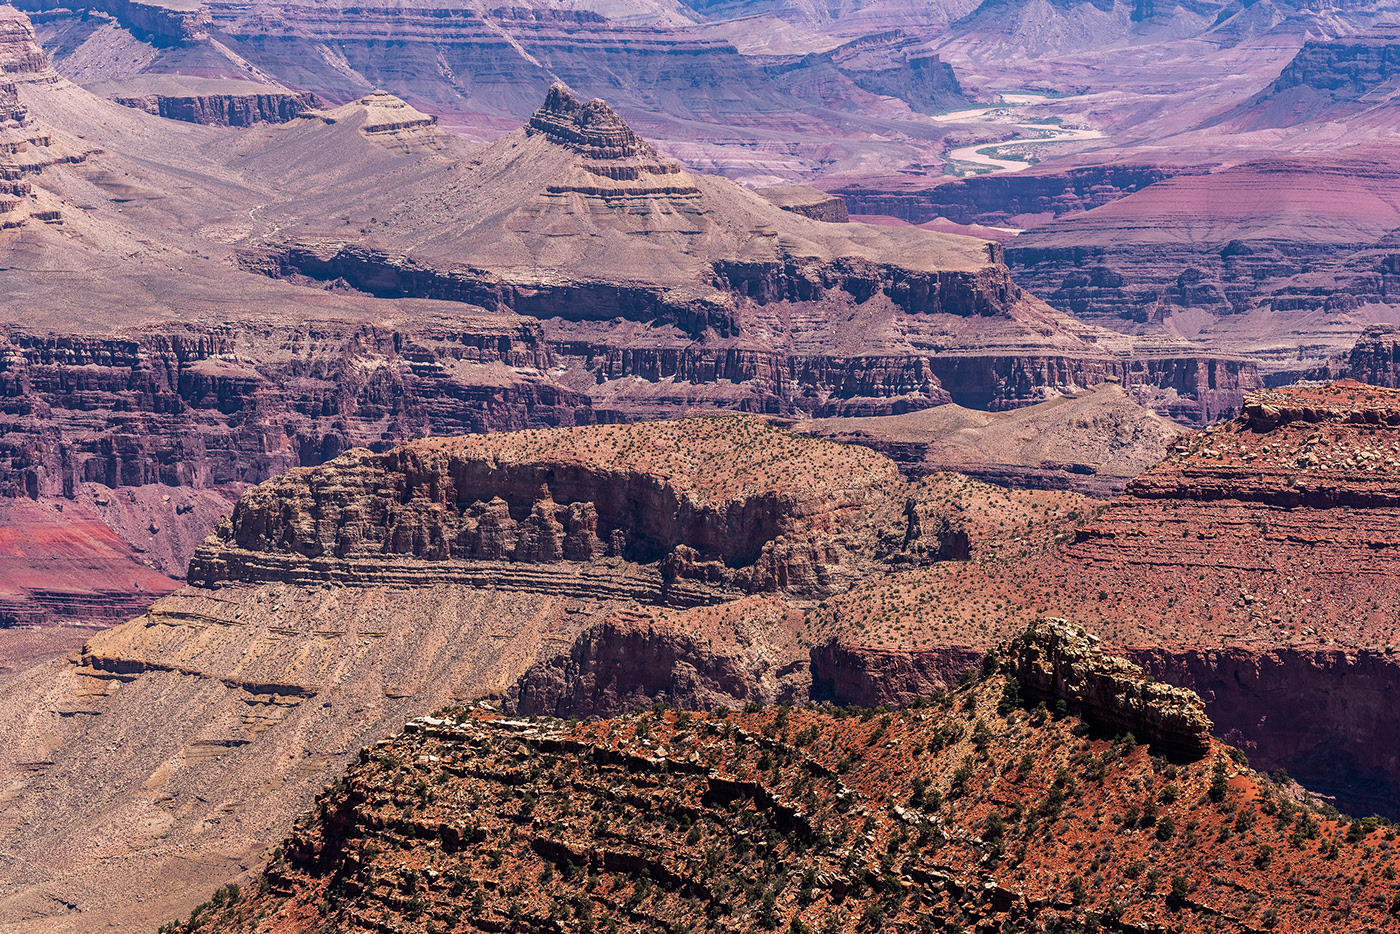 Fine art photography of the Grand Canyon.